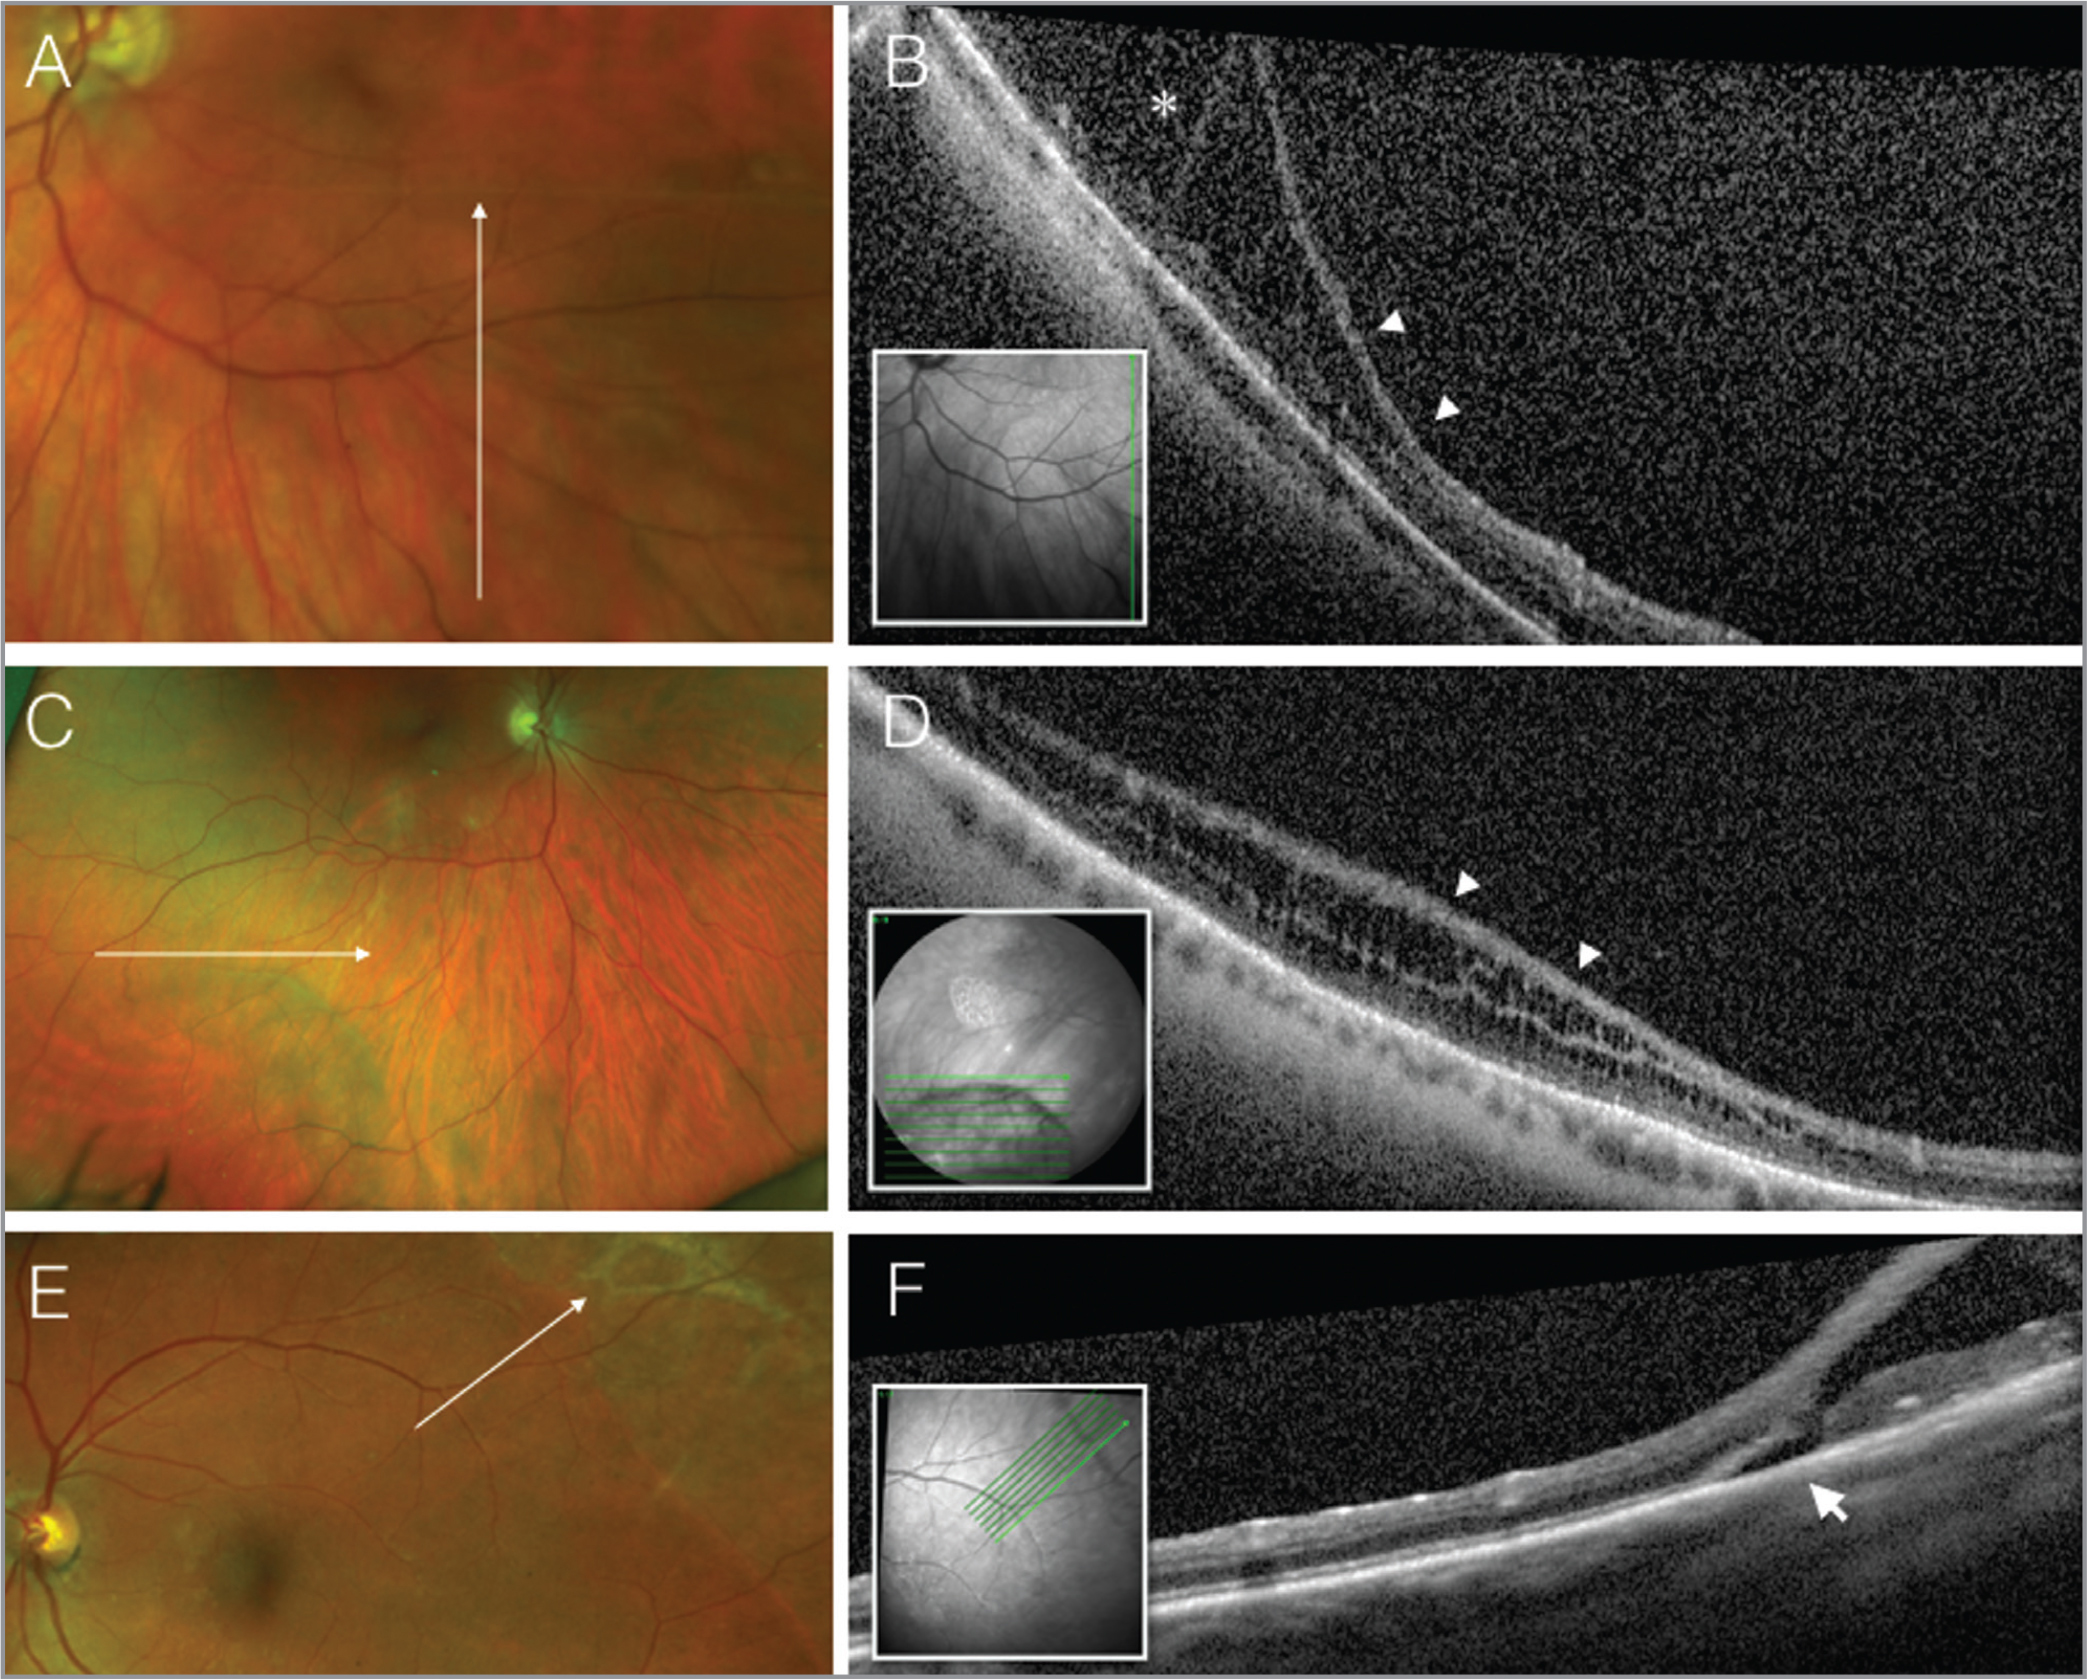 Pseudocolor fundus photos (A, C, E) and spectral-domain optical coherence tomographies (B, D, F) through the areas of retinoschisis illustrating inverted image artifacts (B, asterisk), variable splitting in the OPL and IPL layers (B and D, arrowheads) and a subclinical retinal detachment (F, arrow) associated with an outer retinal hole.